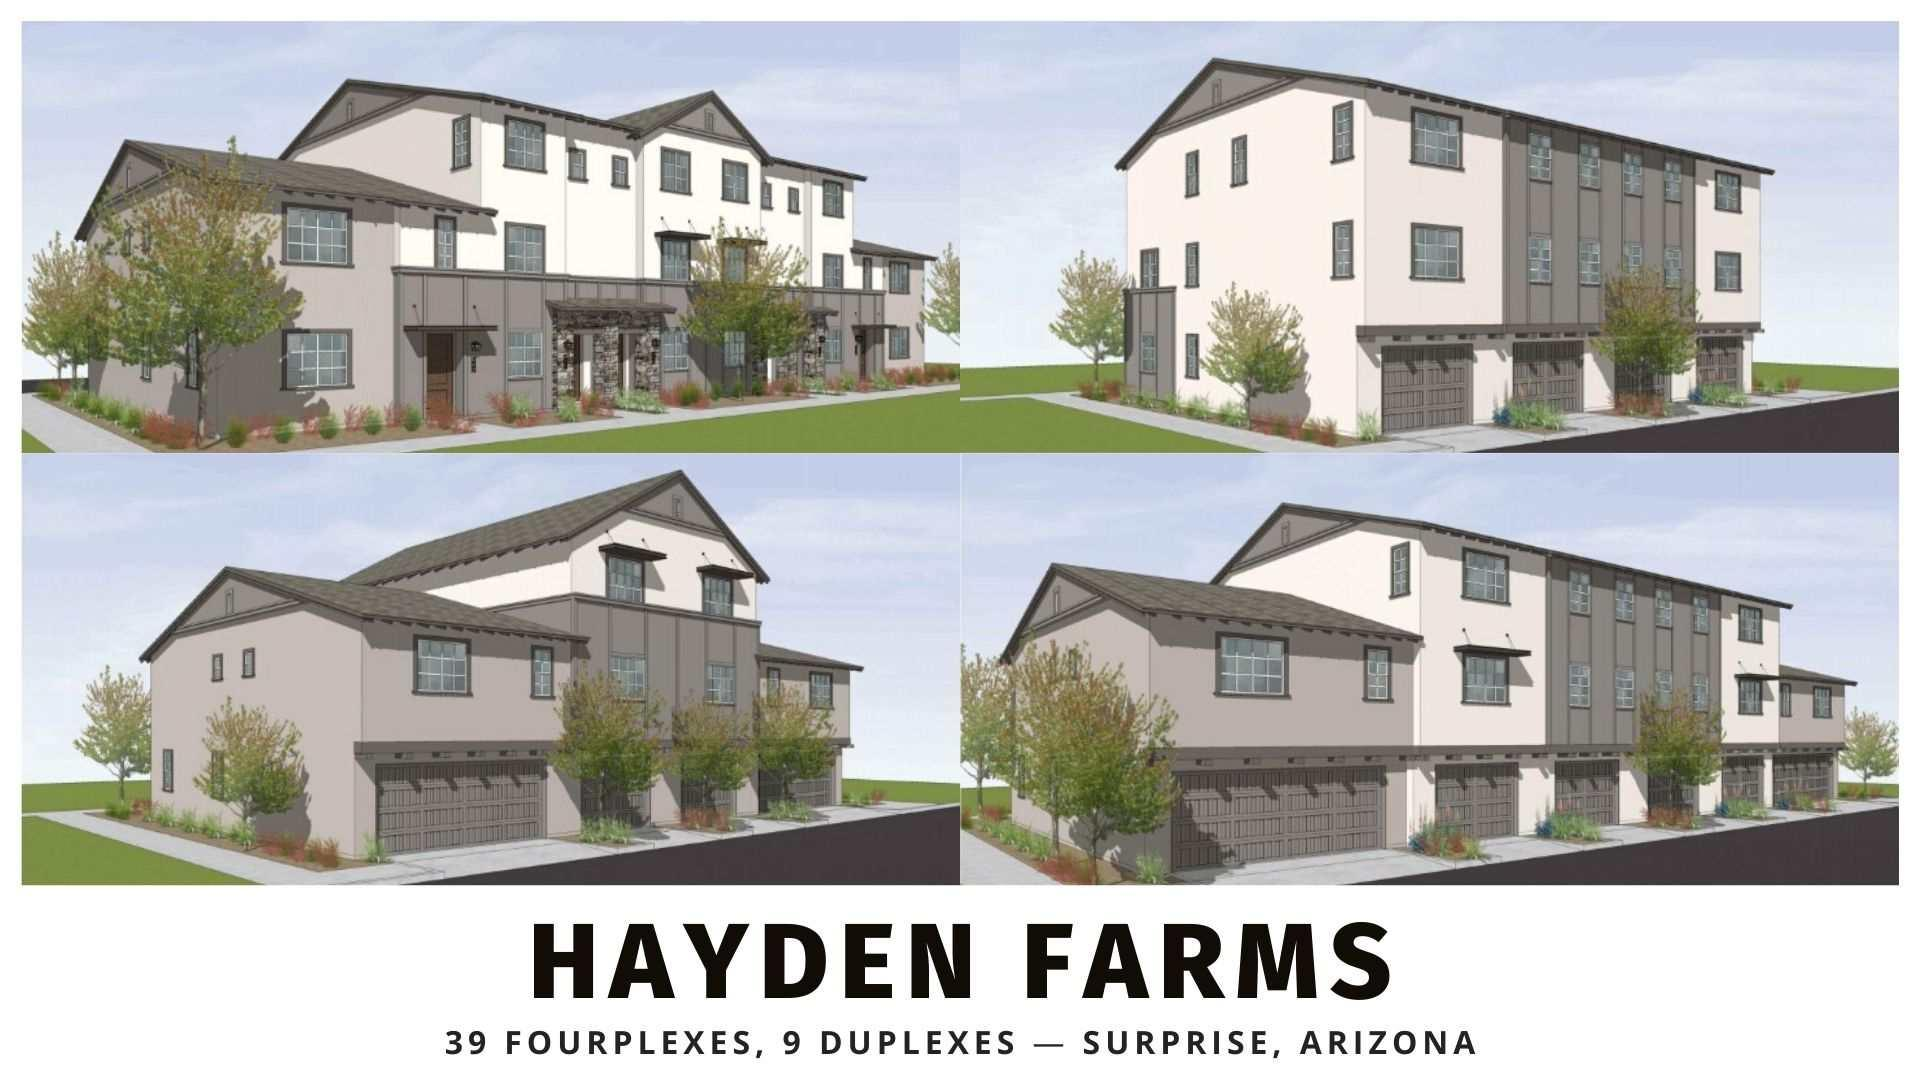 39 fourplexes and 9 duplexes for sale